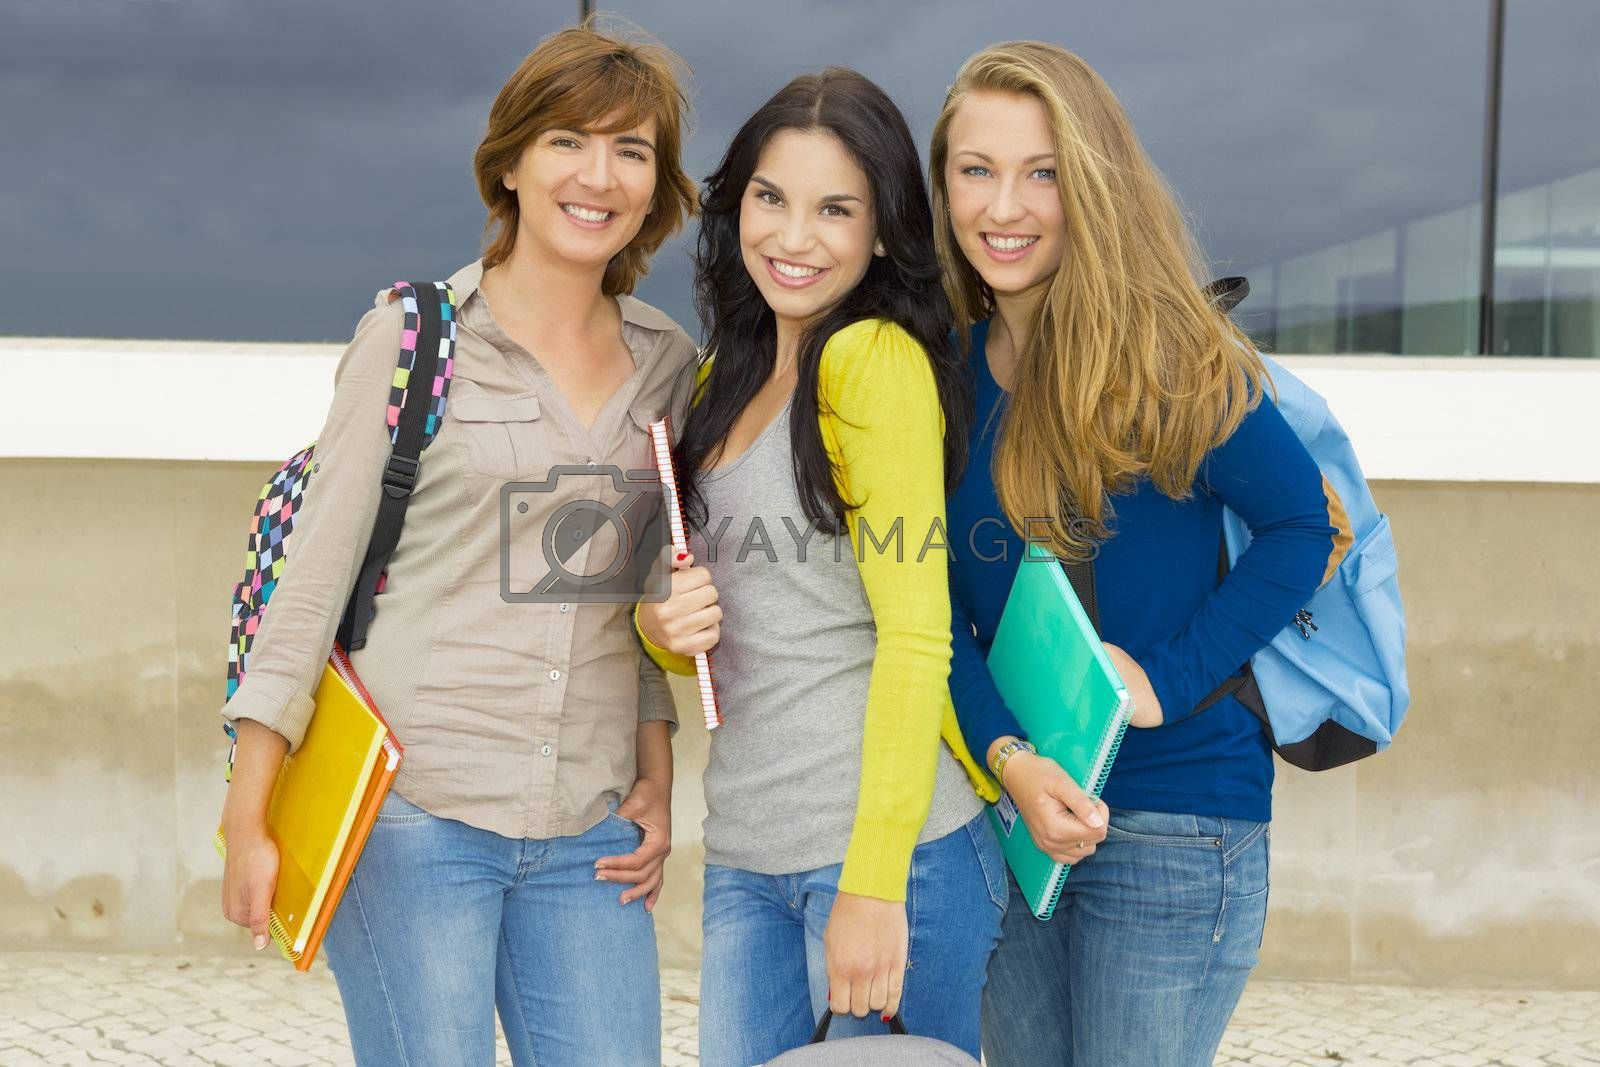 Royalty free image of Happy group of students by Iko